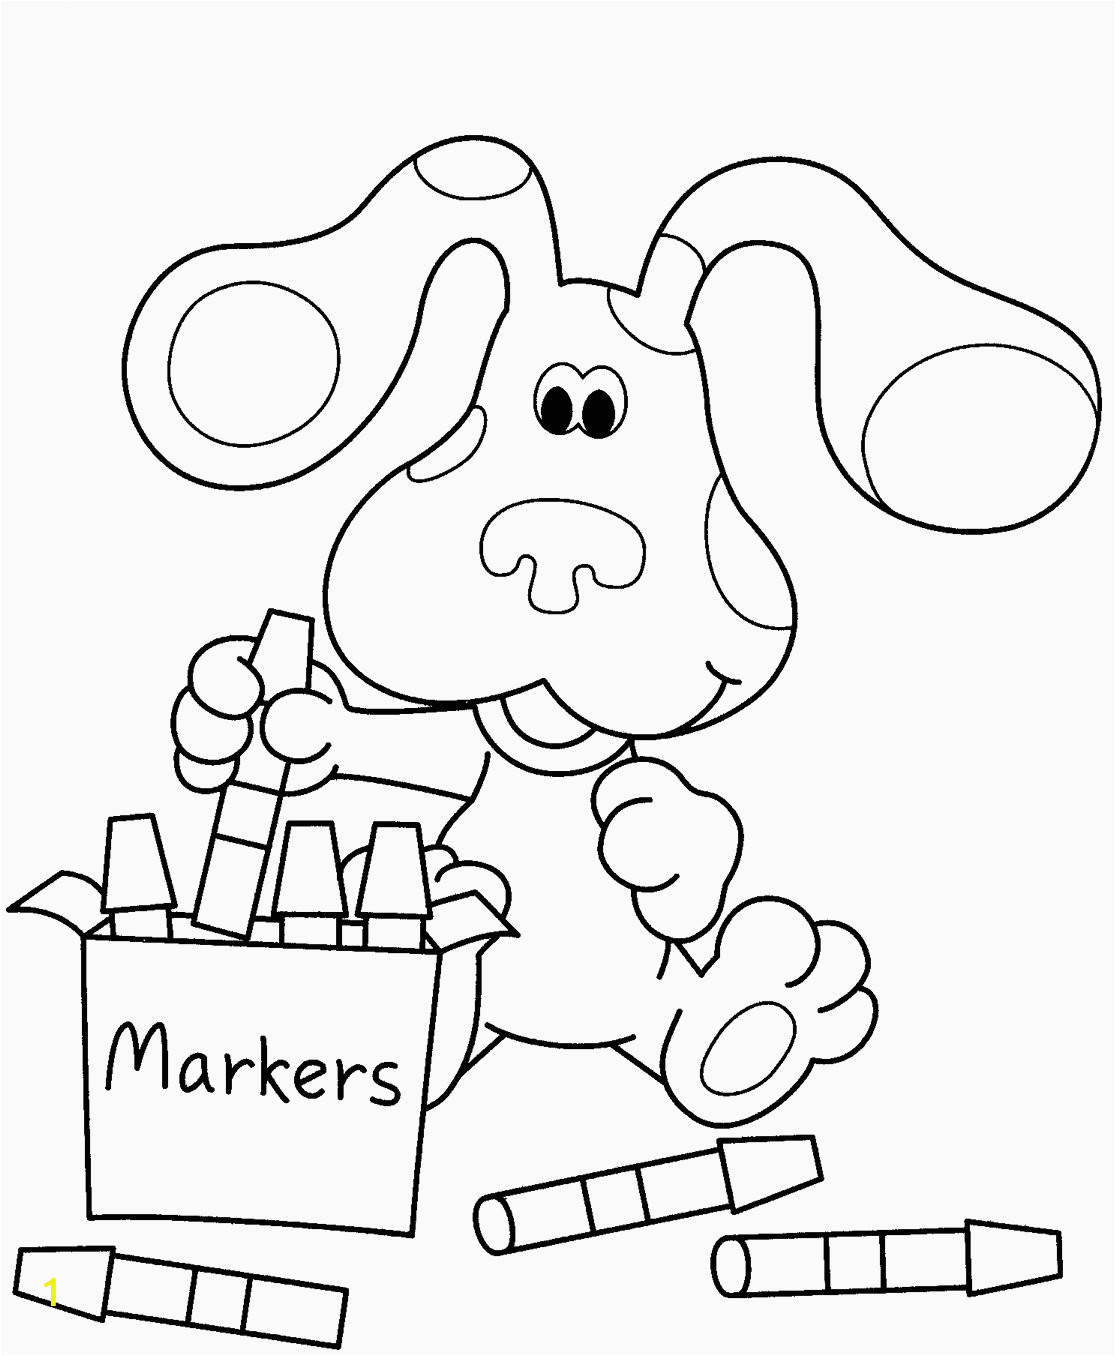 free disney printable coloring pages beautiful nick jr coloring pages for christmas christmas coloring pages of free disney printable coloring pages